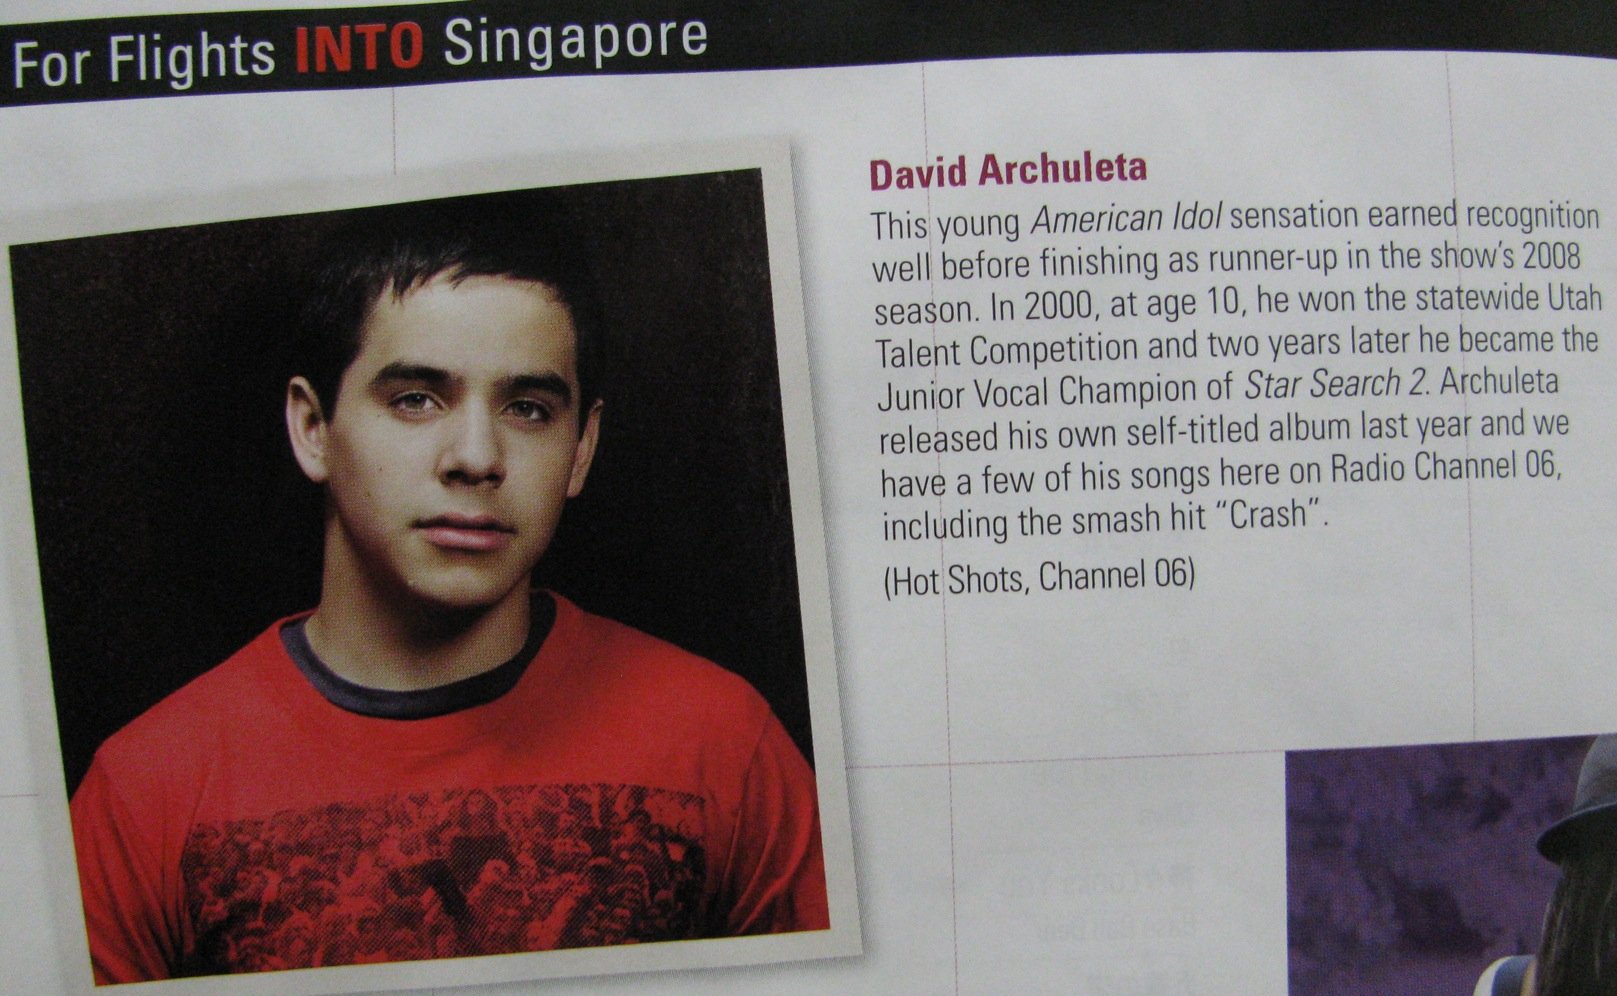 David Archuleta on Singapore Airlines Inflight Entertainment Magazine